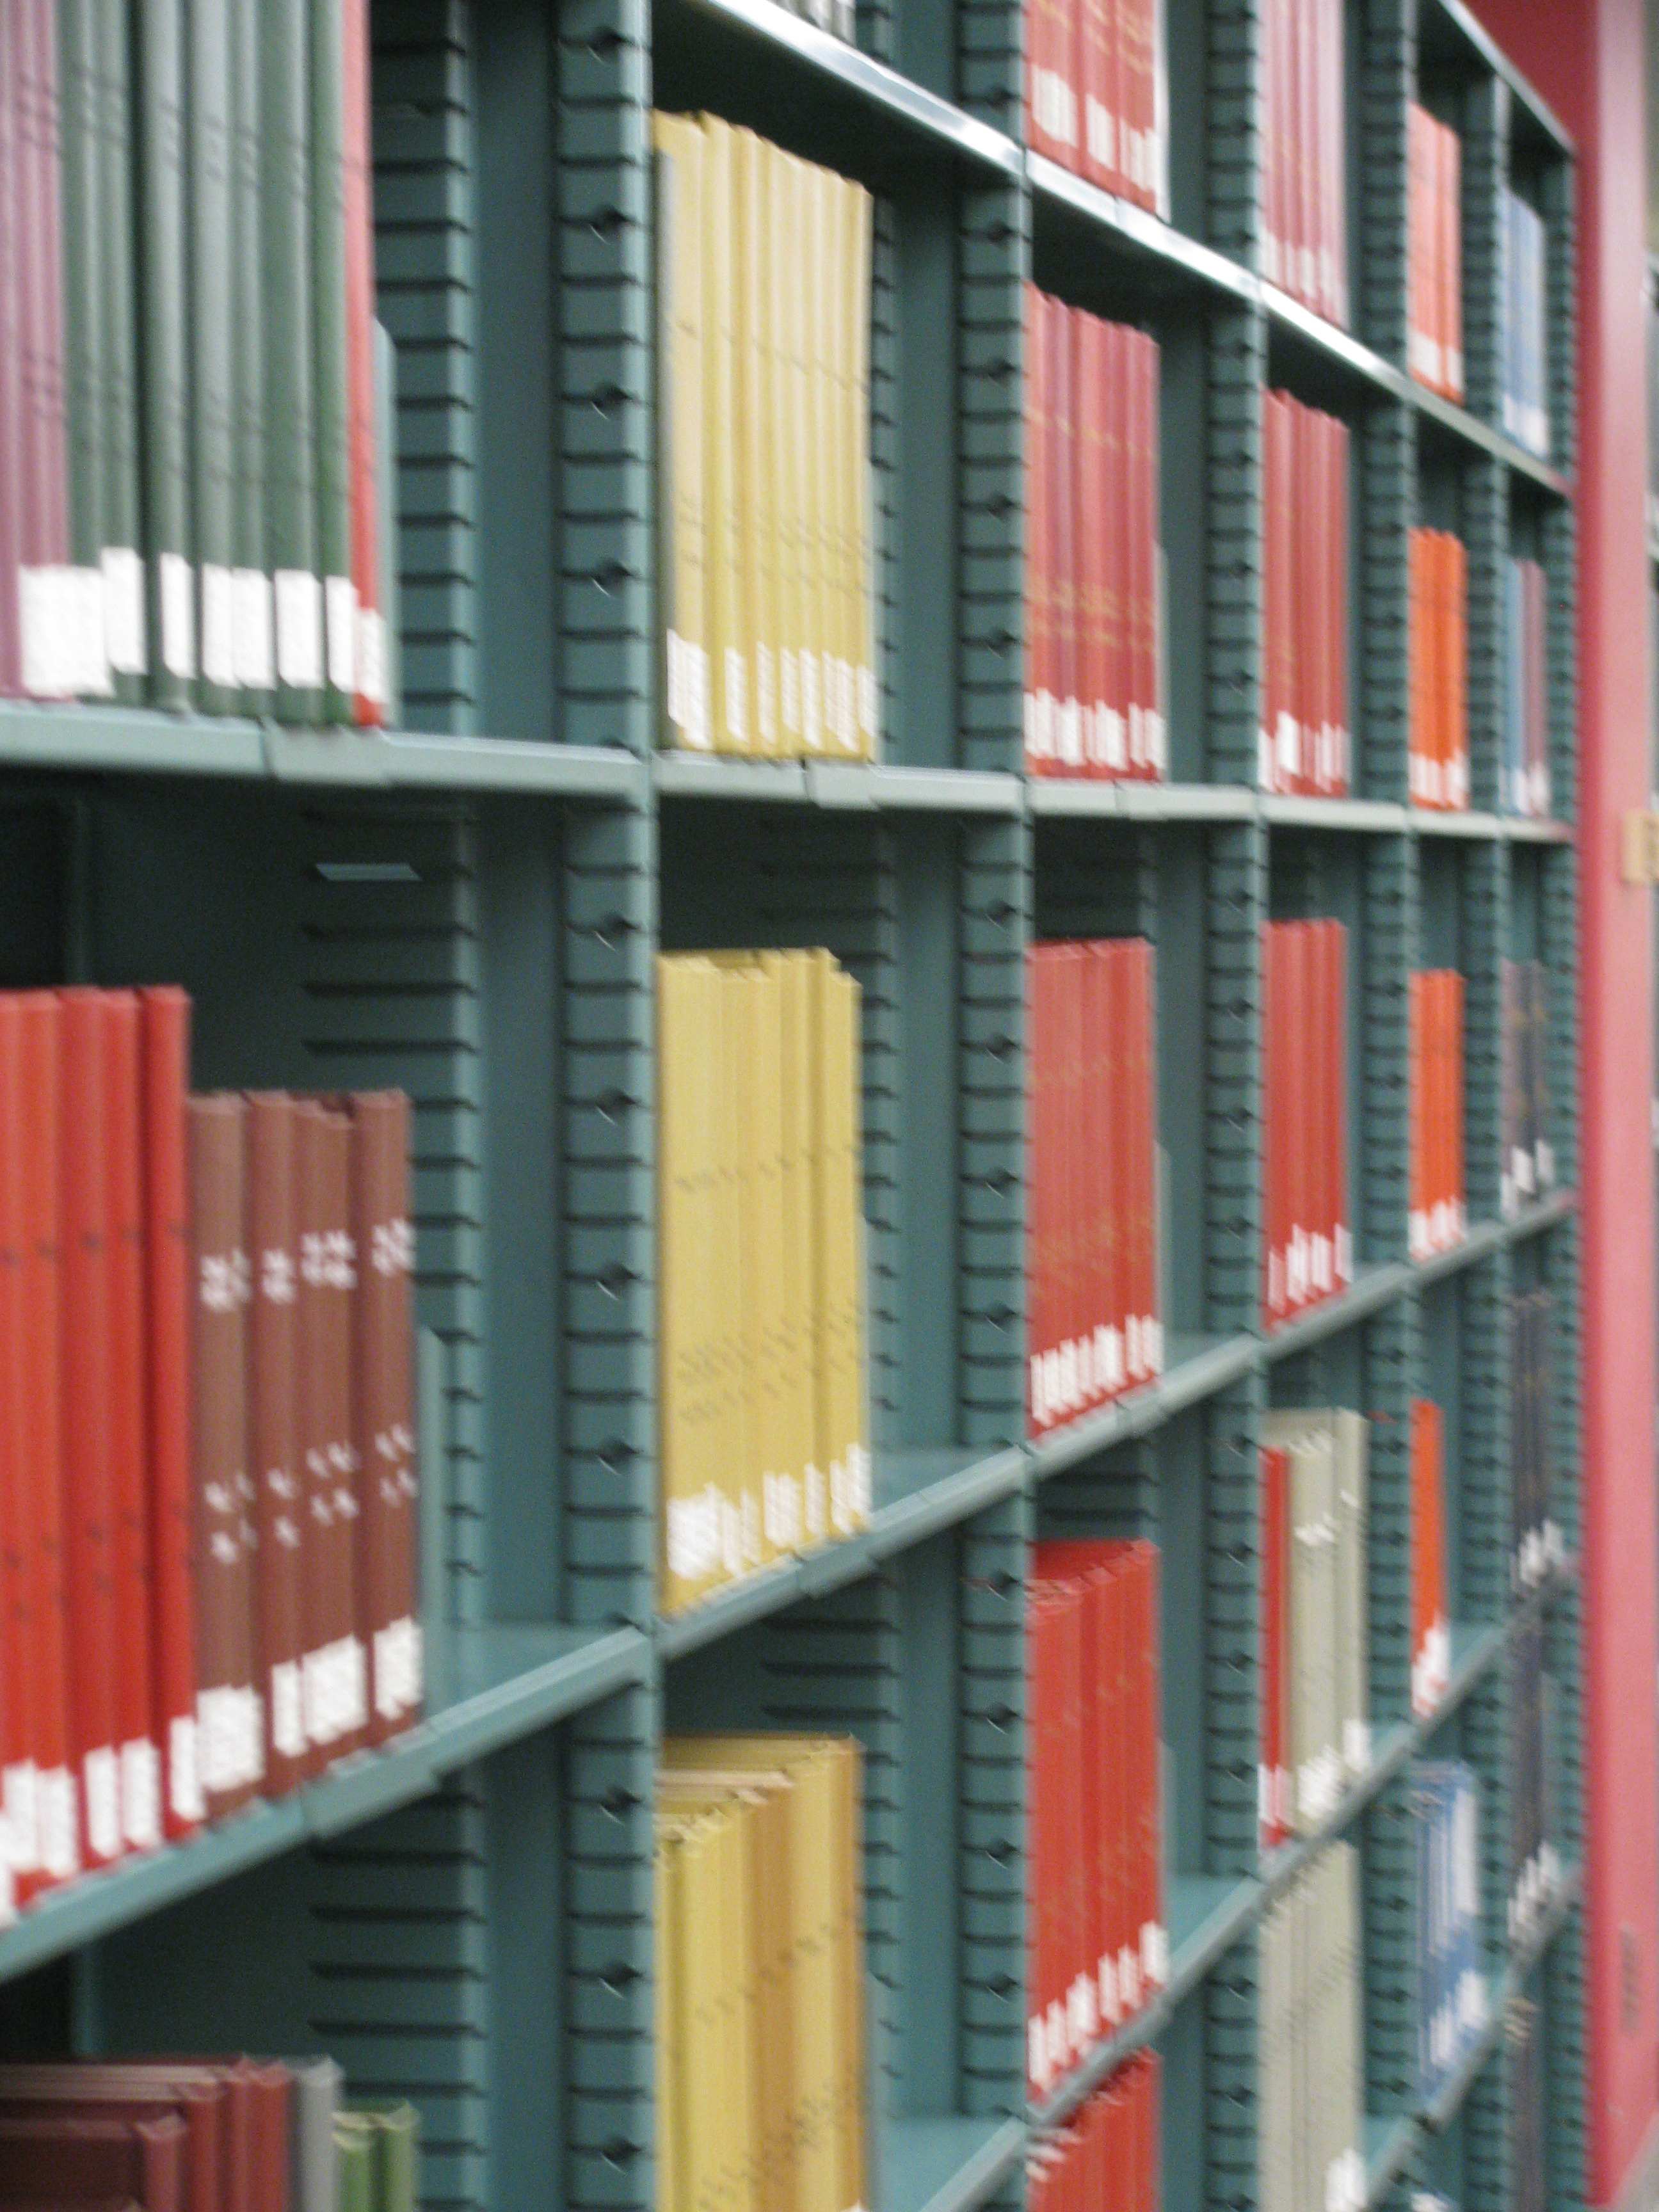 PUC Library Stacks